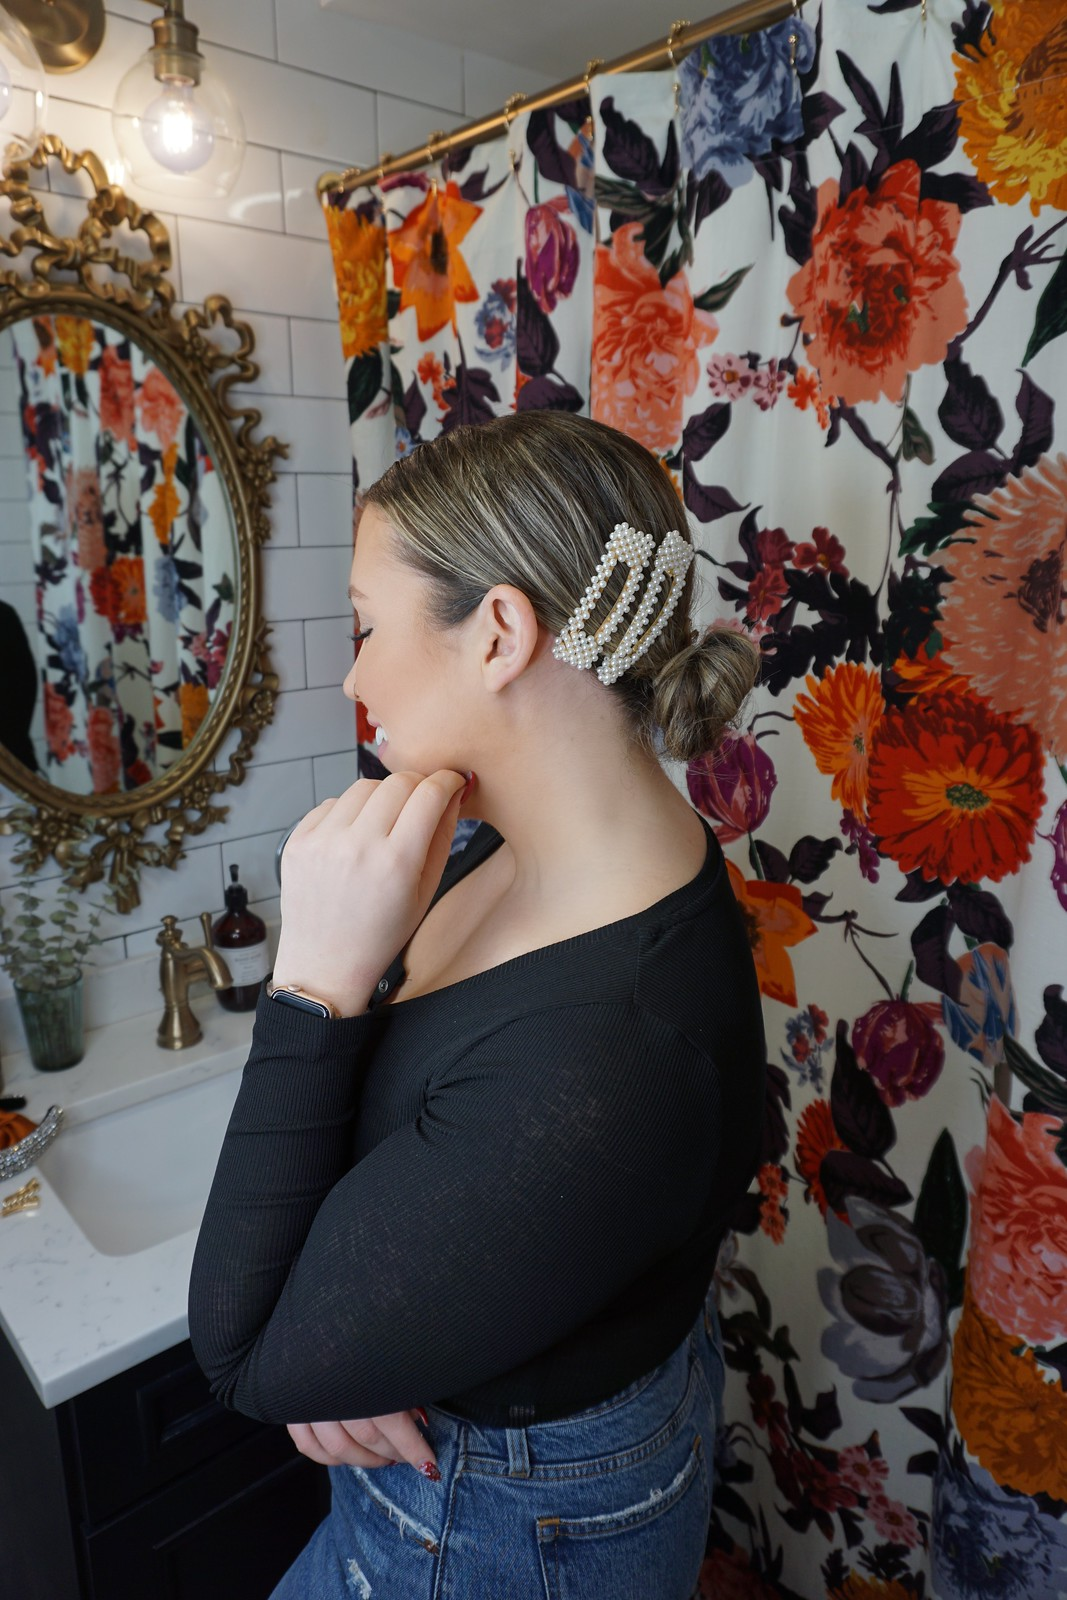 How to Wear Large Pearl Clips | 4 Easy Bun Hairstyles Anyone Can Recreate | Easy Ways to Dress Up Your Bun Hairstyle | Inexpensive Hair Accessories